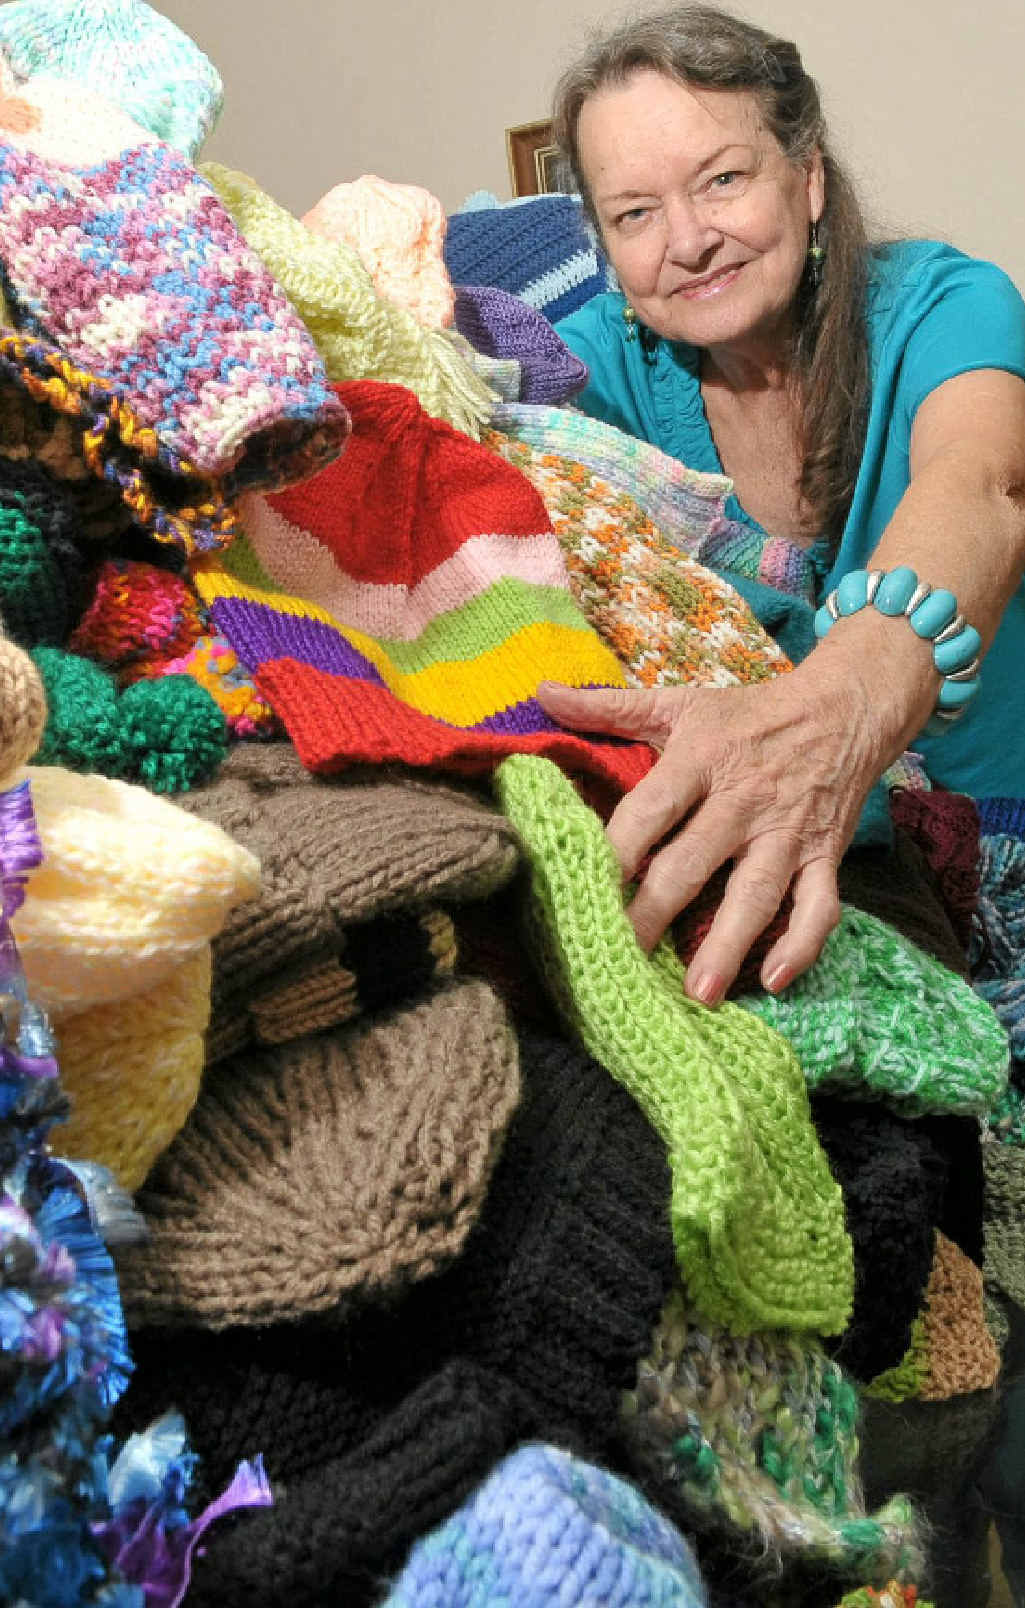 June Luton prepares to distribute items lovingly knitted by the Winter Angels.